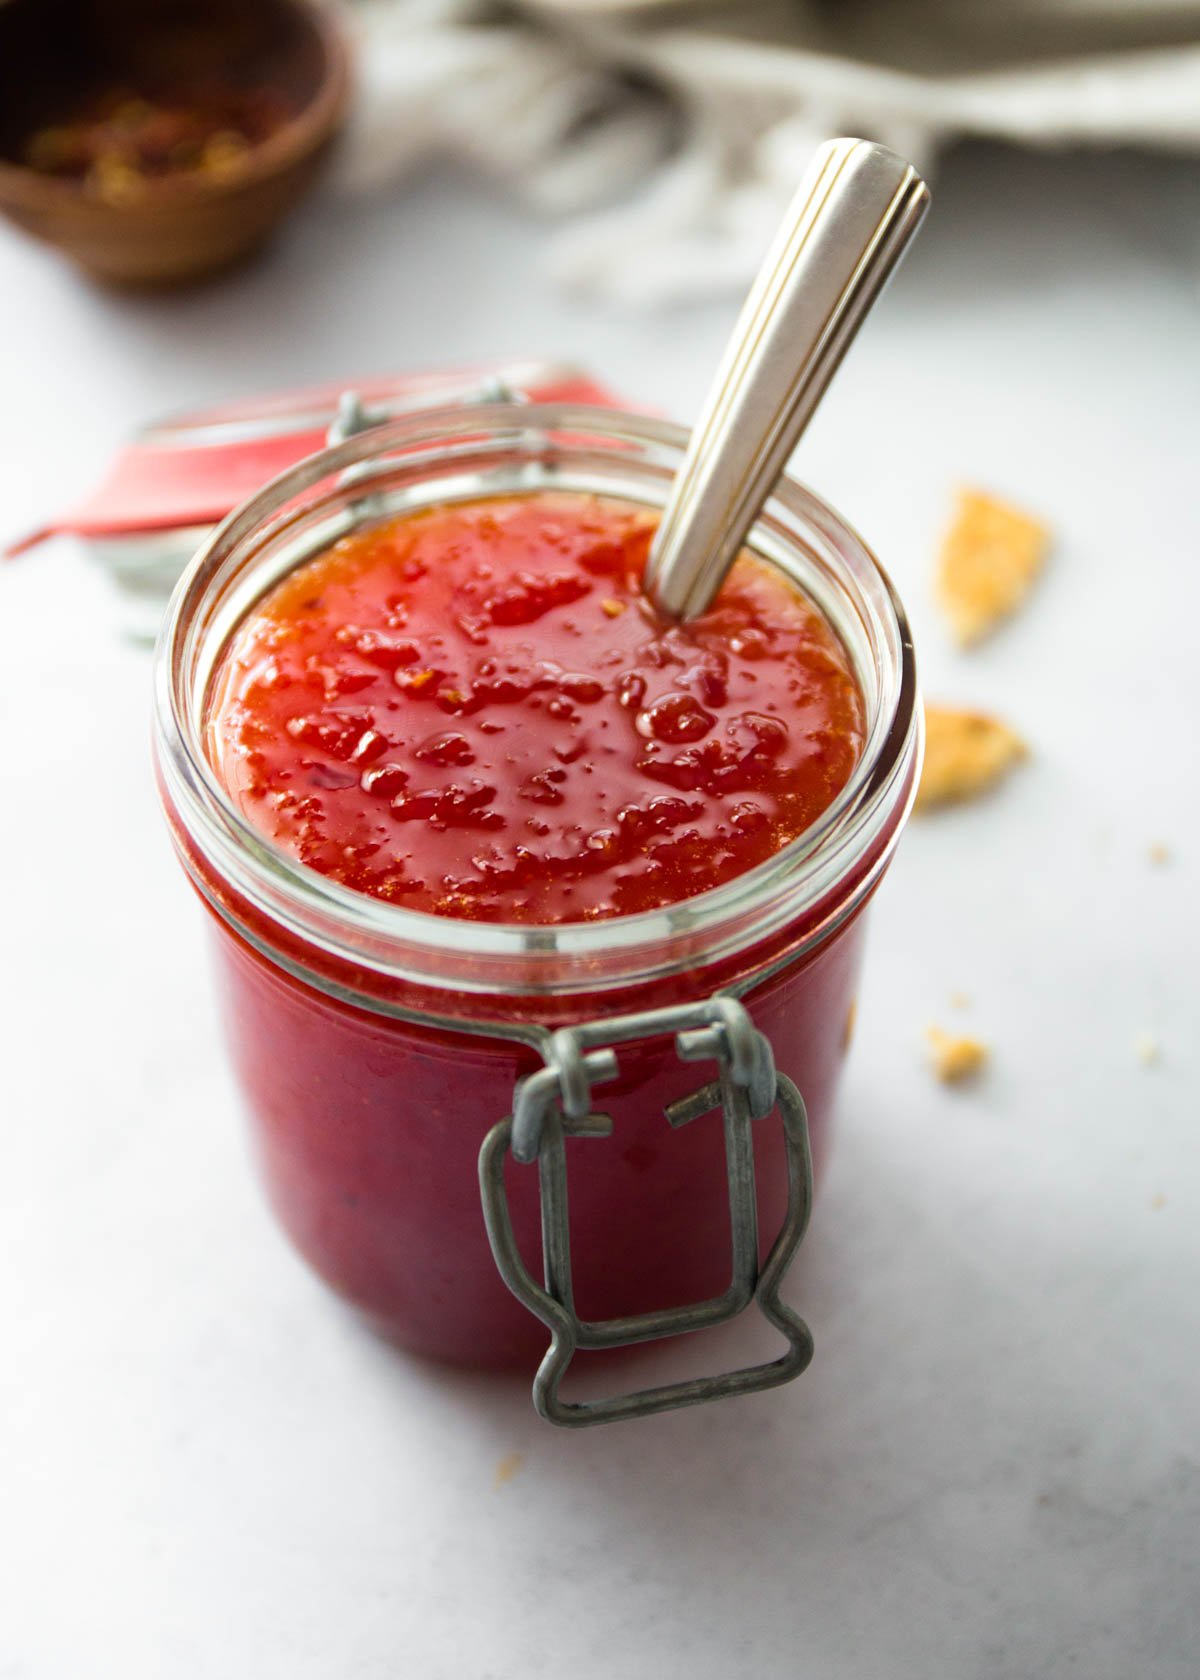 a jar of jelly on a white countertop